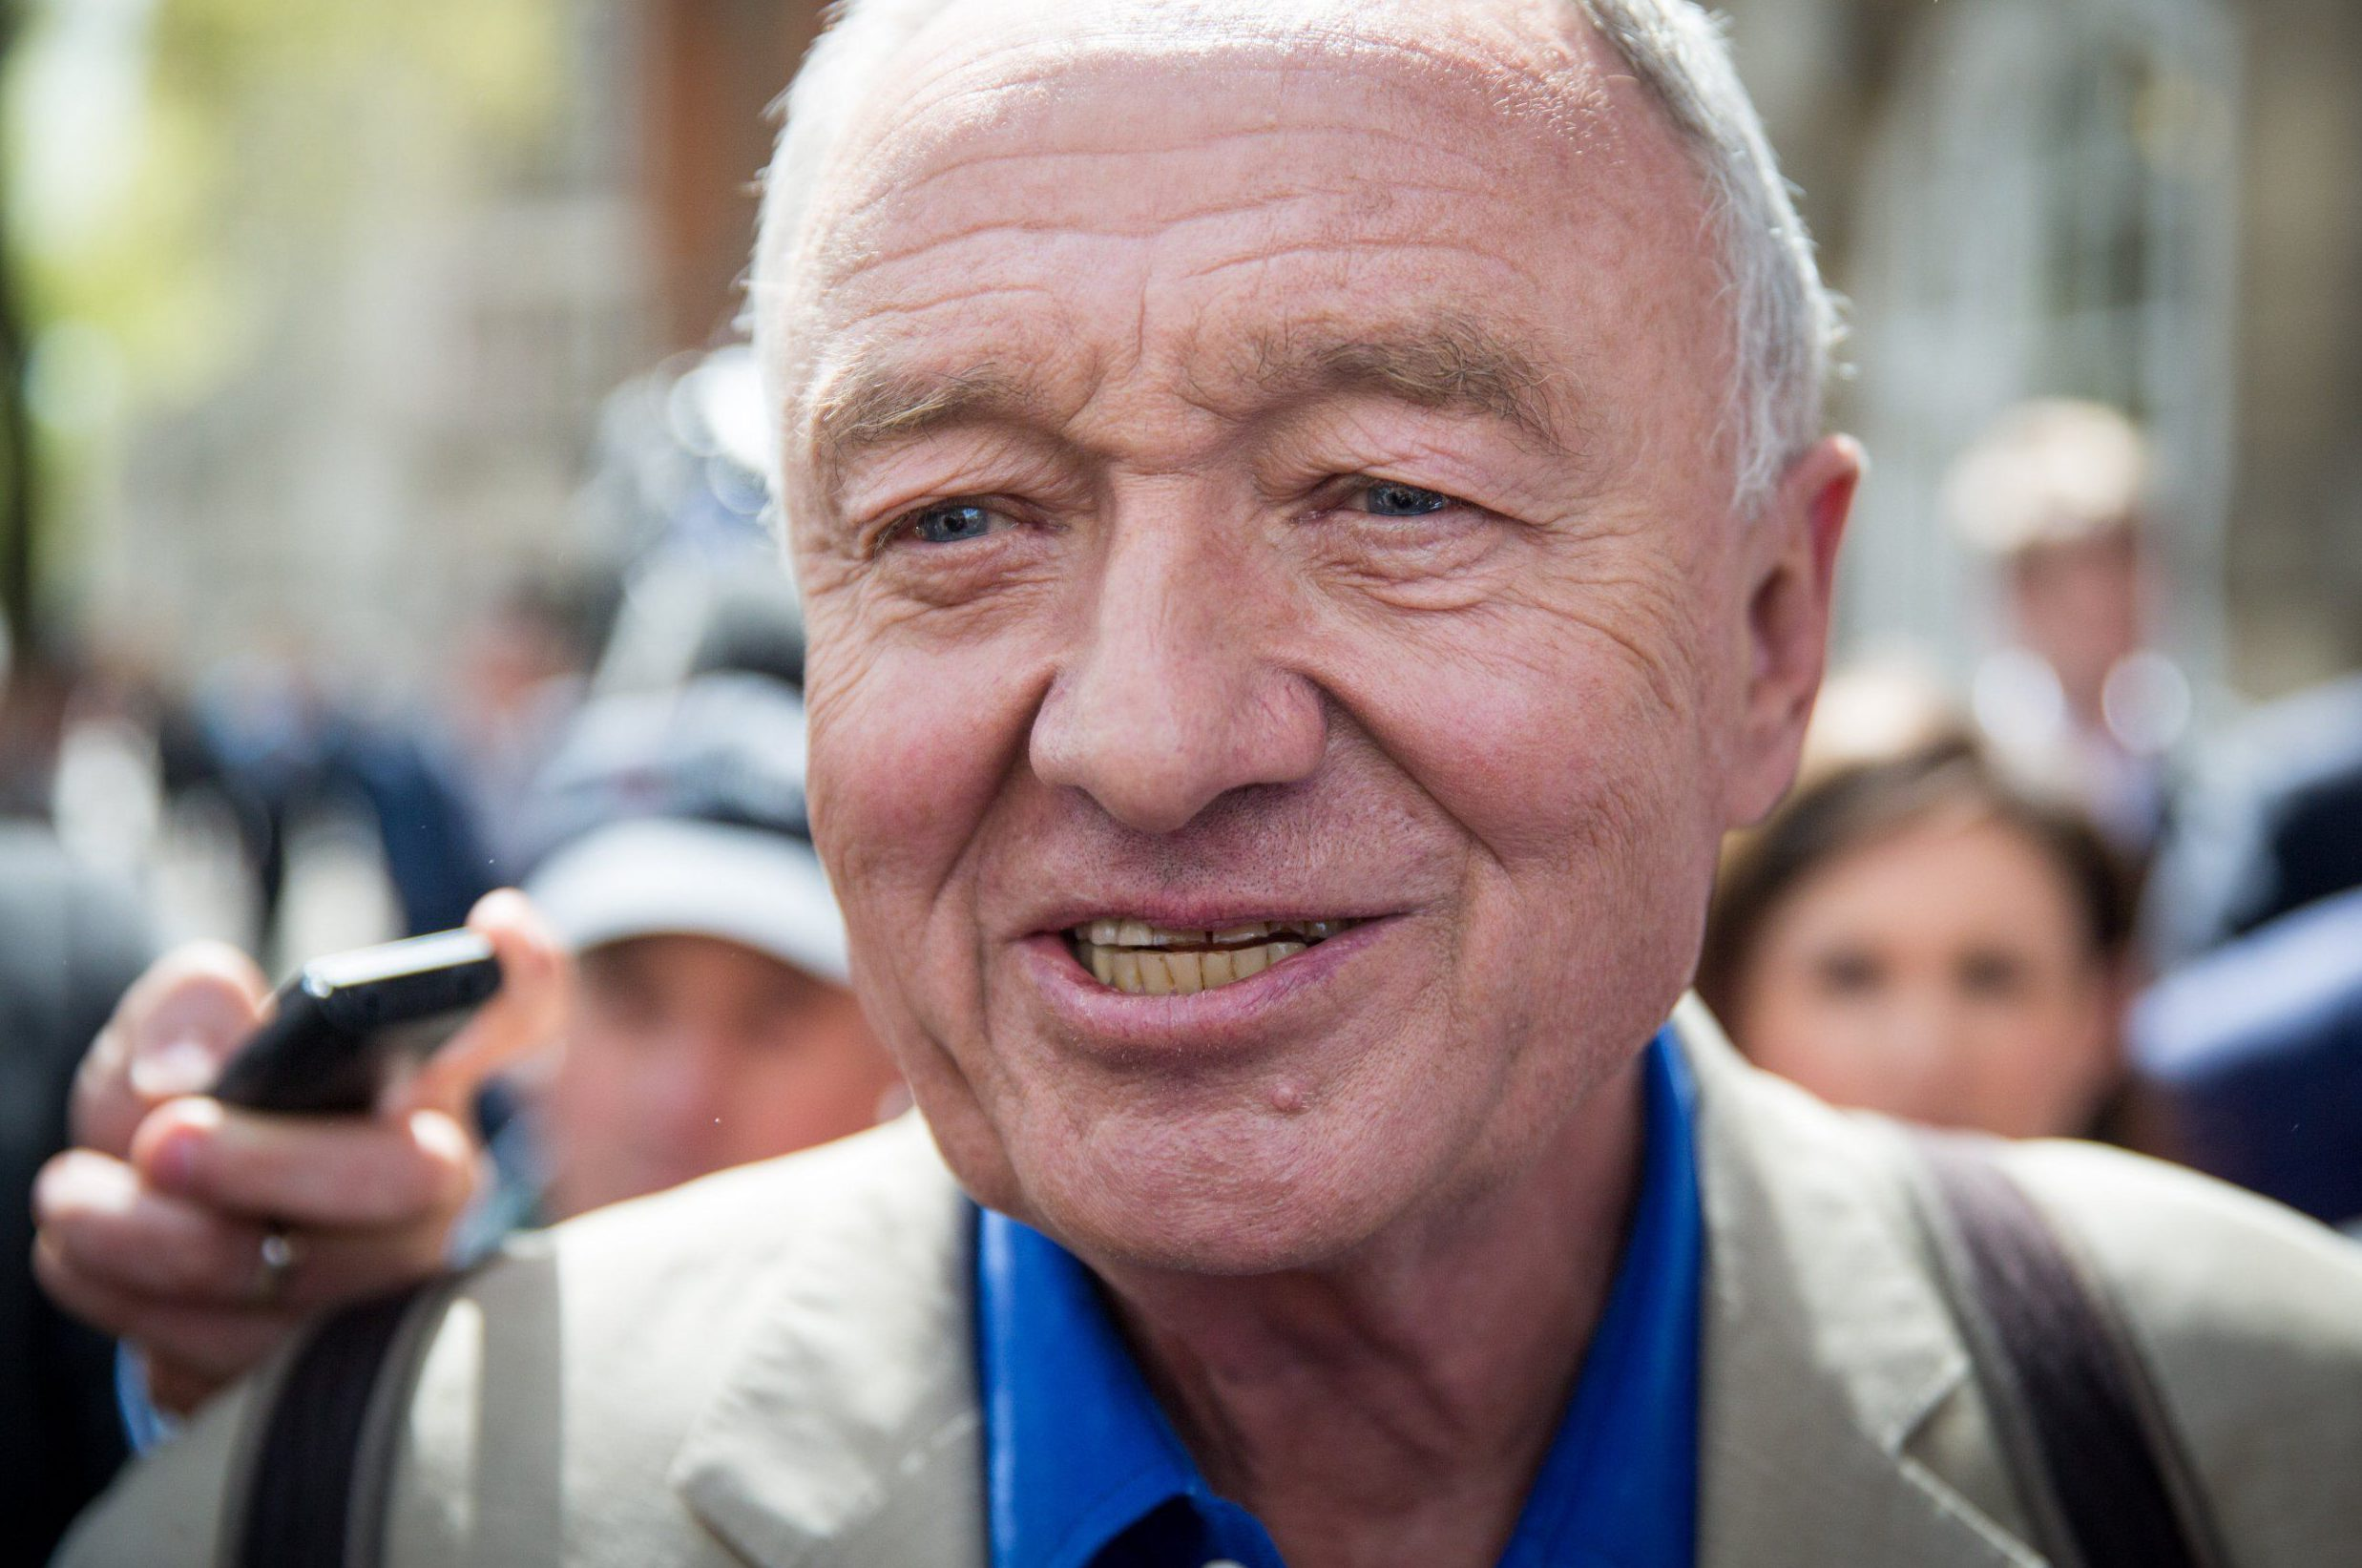 LONDON, ENGLAND - APRIL 28: Ken Livingstone leaves Millbank Studios on April 28, 2016 in London, England. London Mayoral candidate and Labour MP for Tooting, Sadiq Khan, has called for Mr Livingstone to be expelled from Labour Party for comments made while defending Naz Shah, the Labour MP suspended over 'anti-Semitic' comments. (Photo by Rob Stothard/Getty Images)